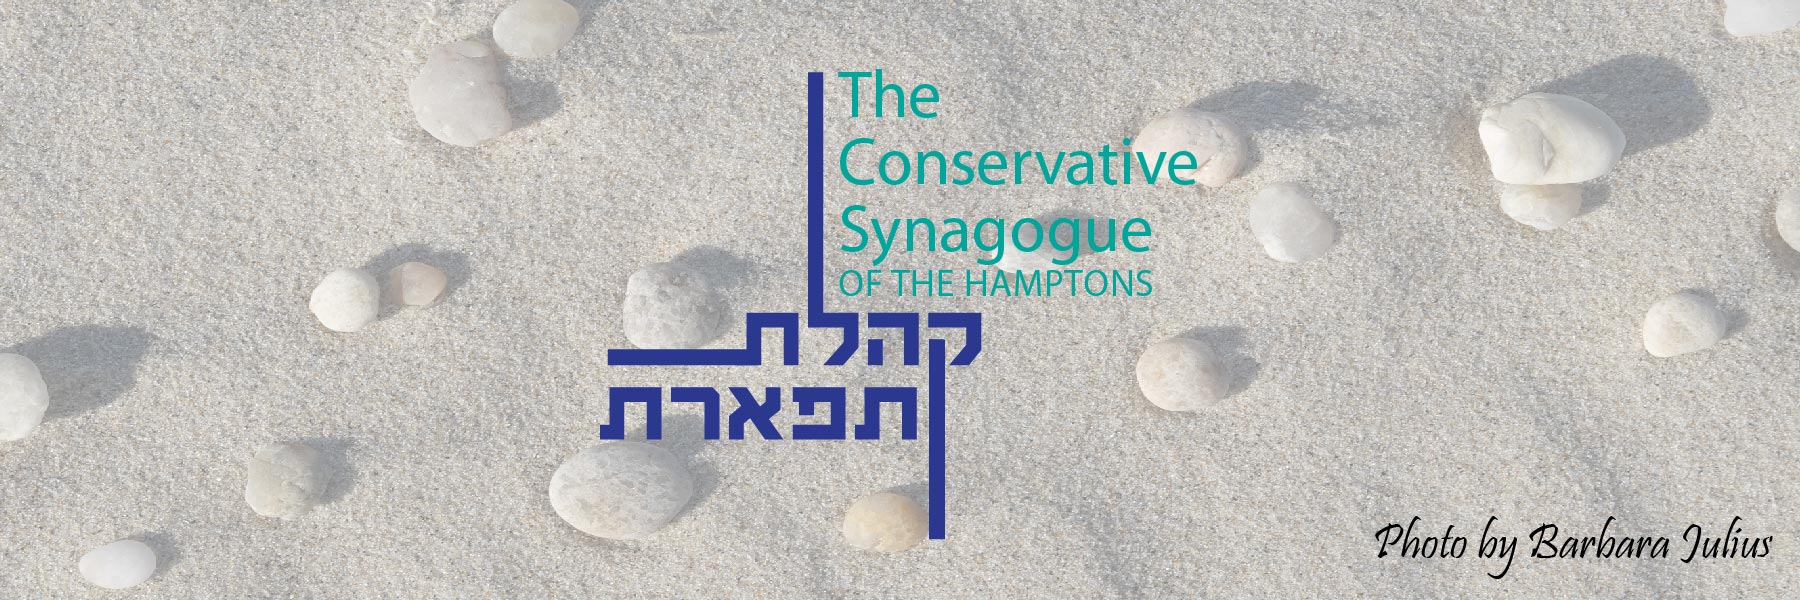 The Conservative Synagogue of the Hamptons